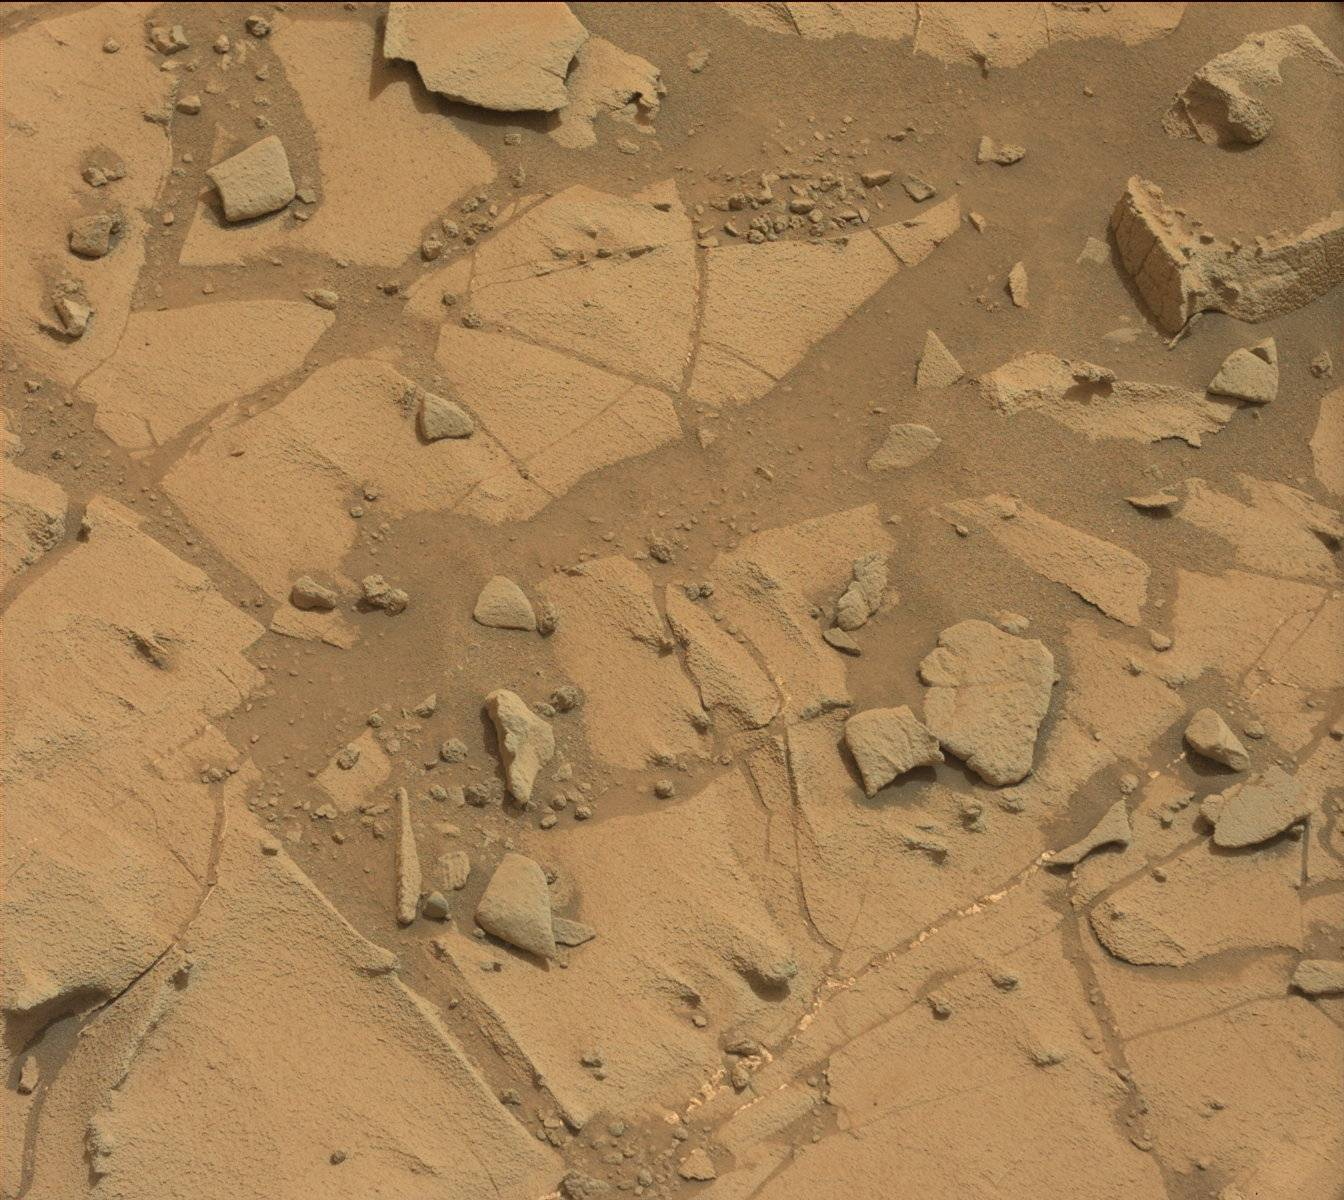 Nasa's Mars rover Curiosity acquired this image using its Mast Camera (Mastcam) on Sol 792